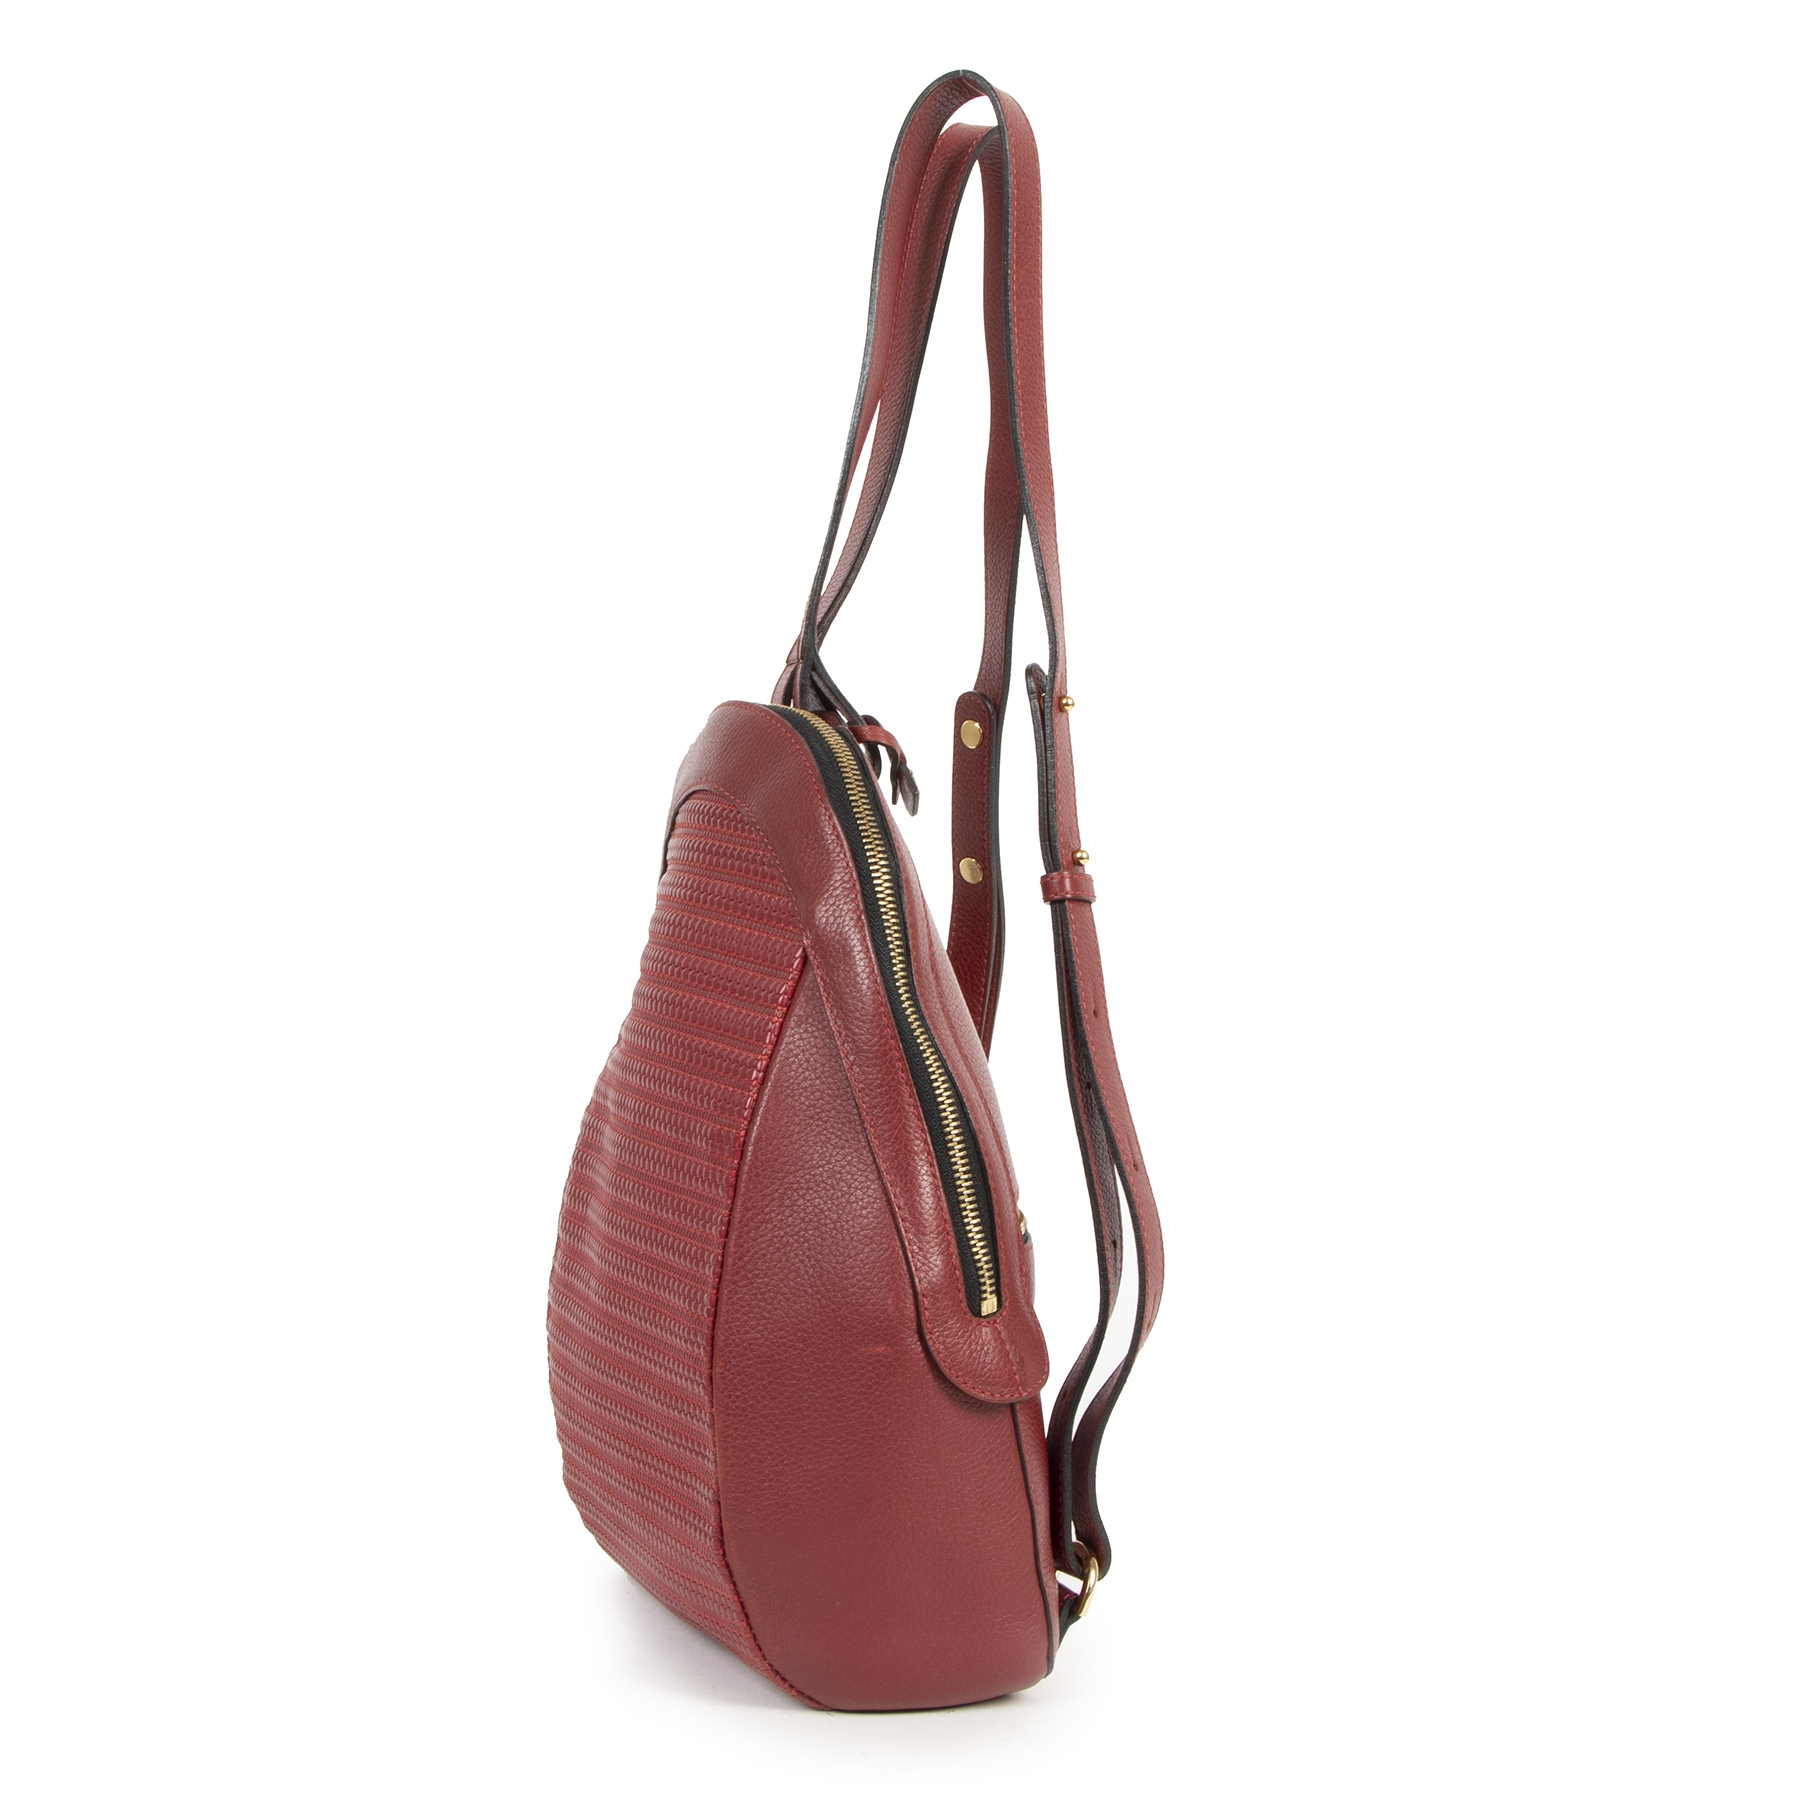 Delvaux Red Azov Backpack secondhand at the right price safe and secure online at LabelLOV Antwerp Belgium